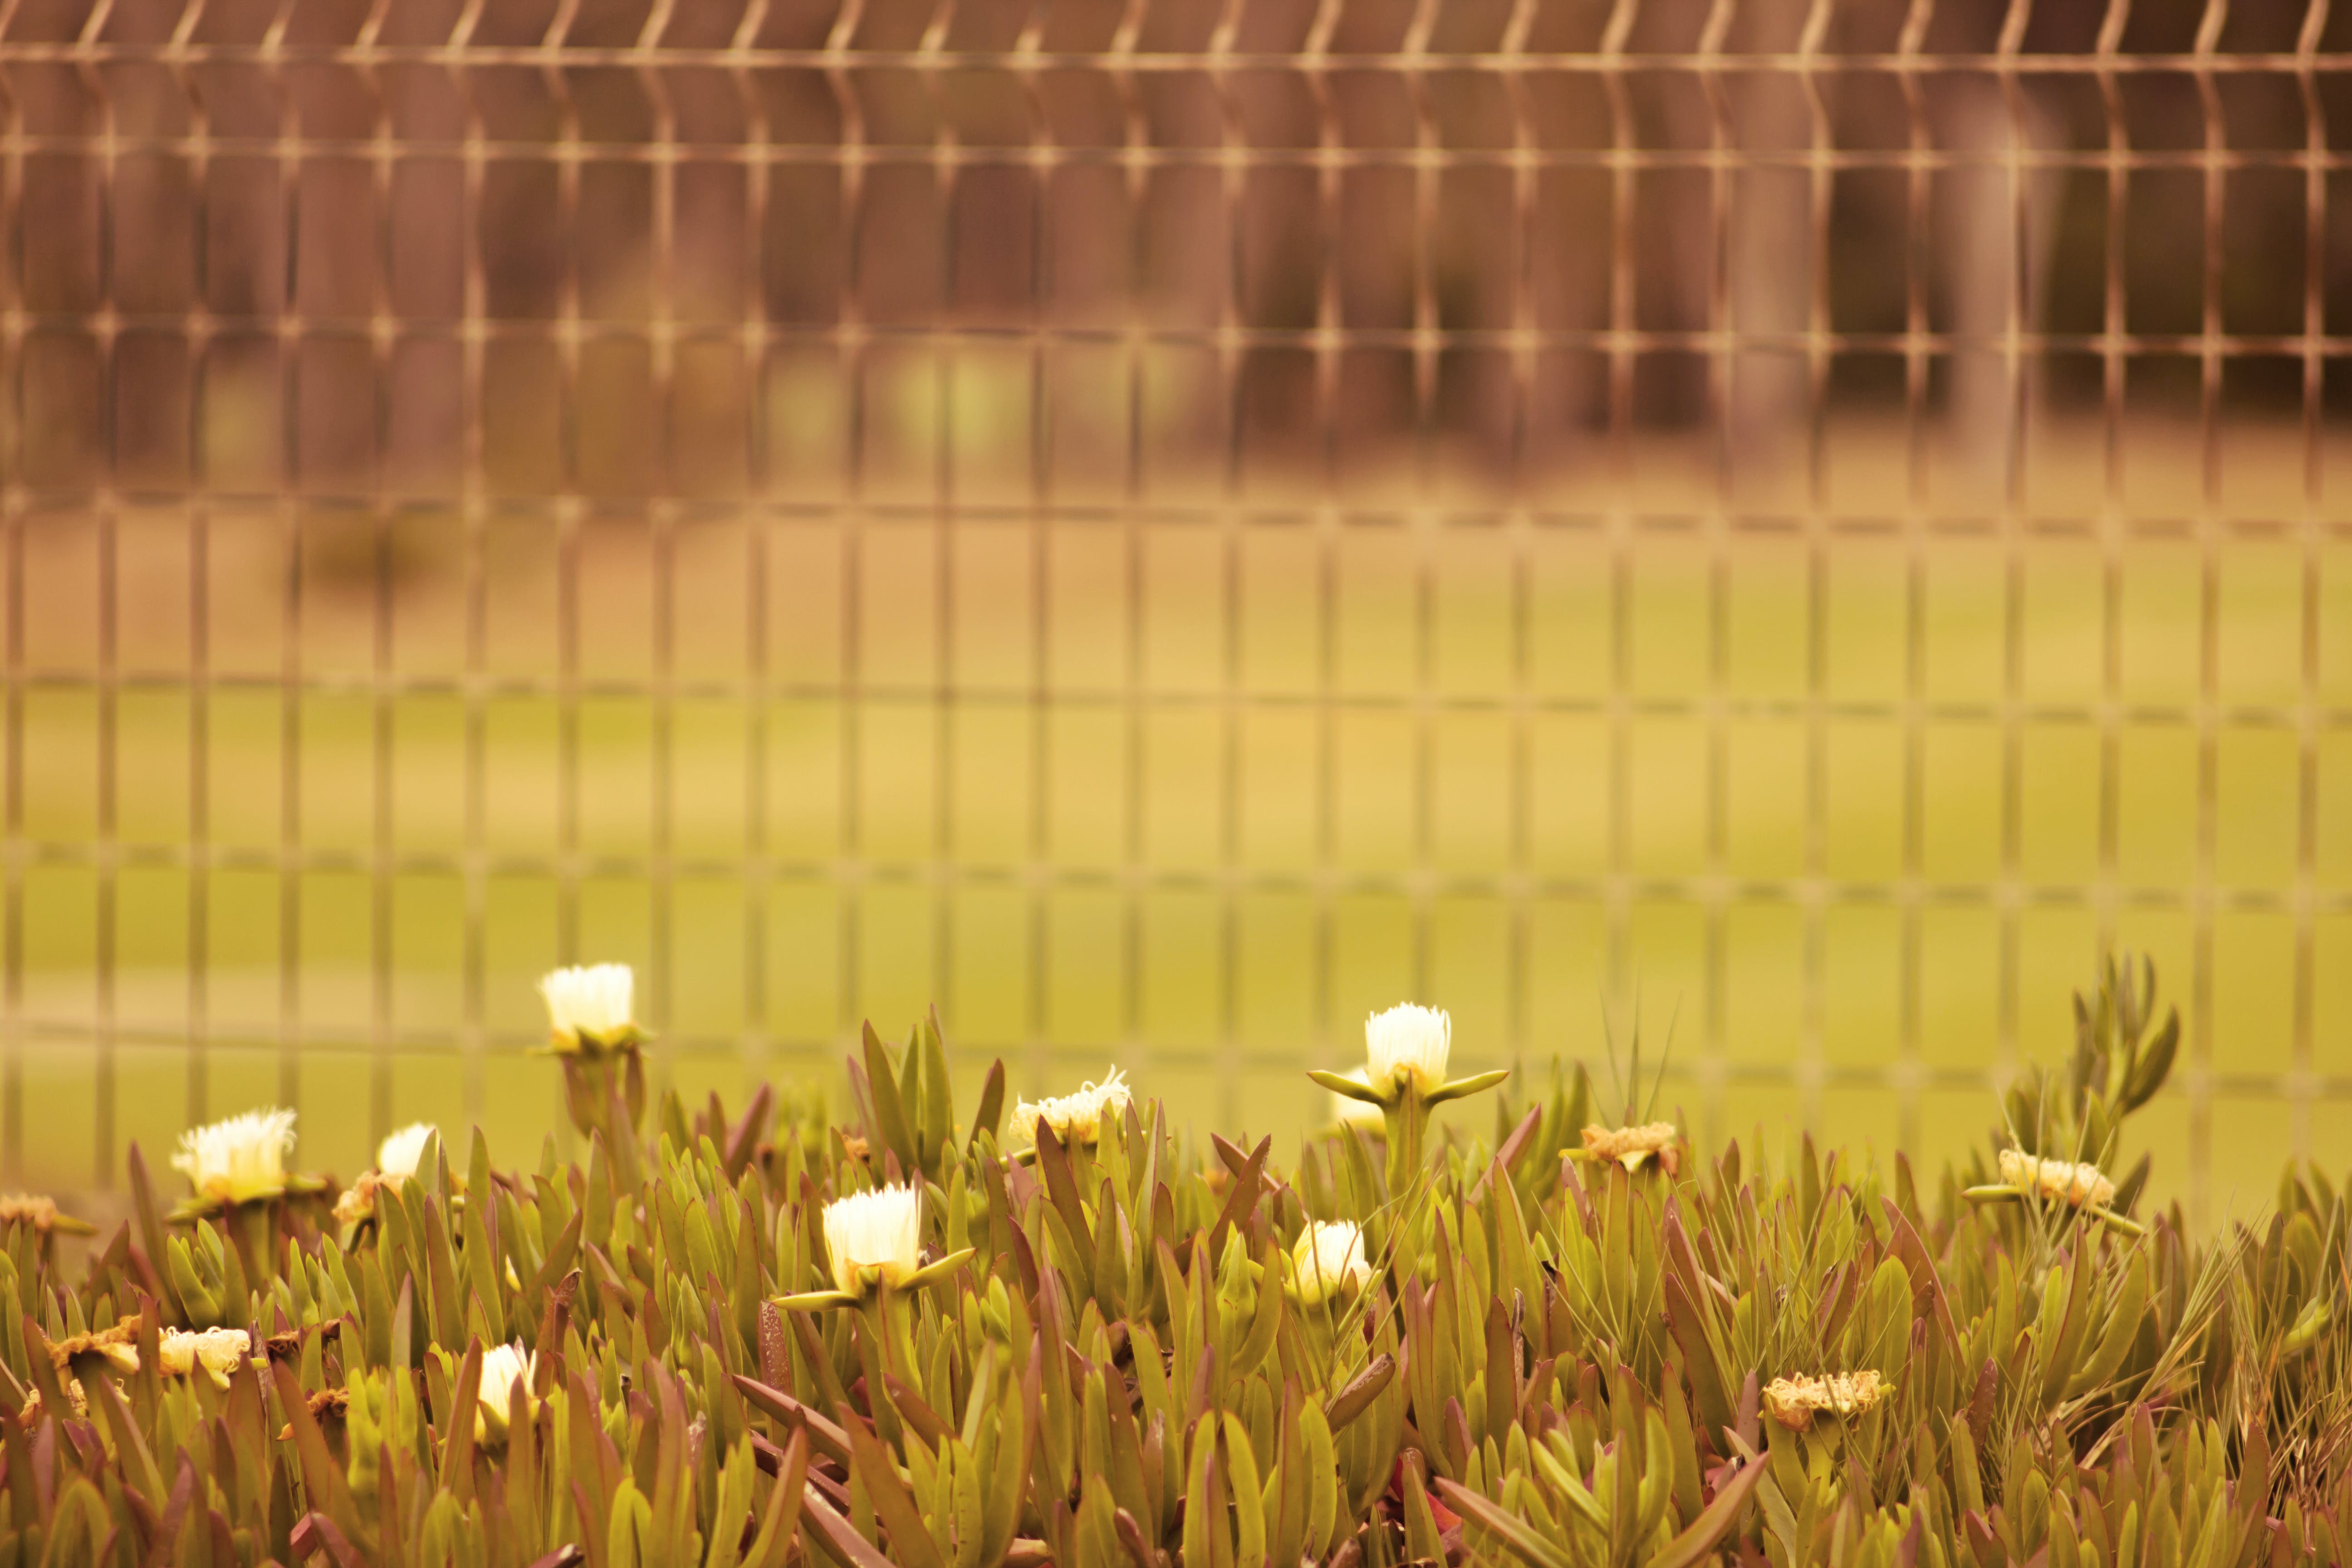 Selective Focus Photo of White Flowers Near Fence